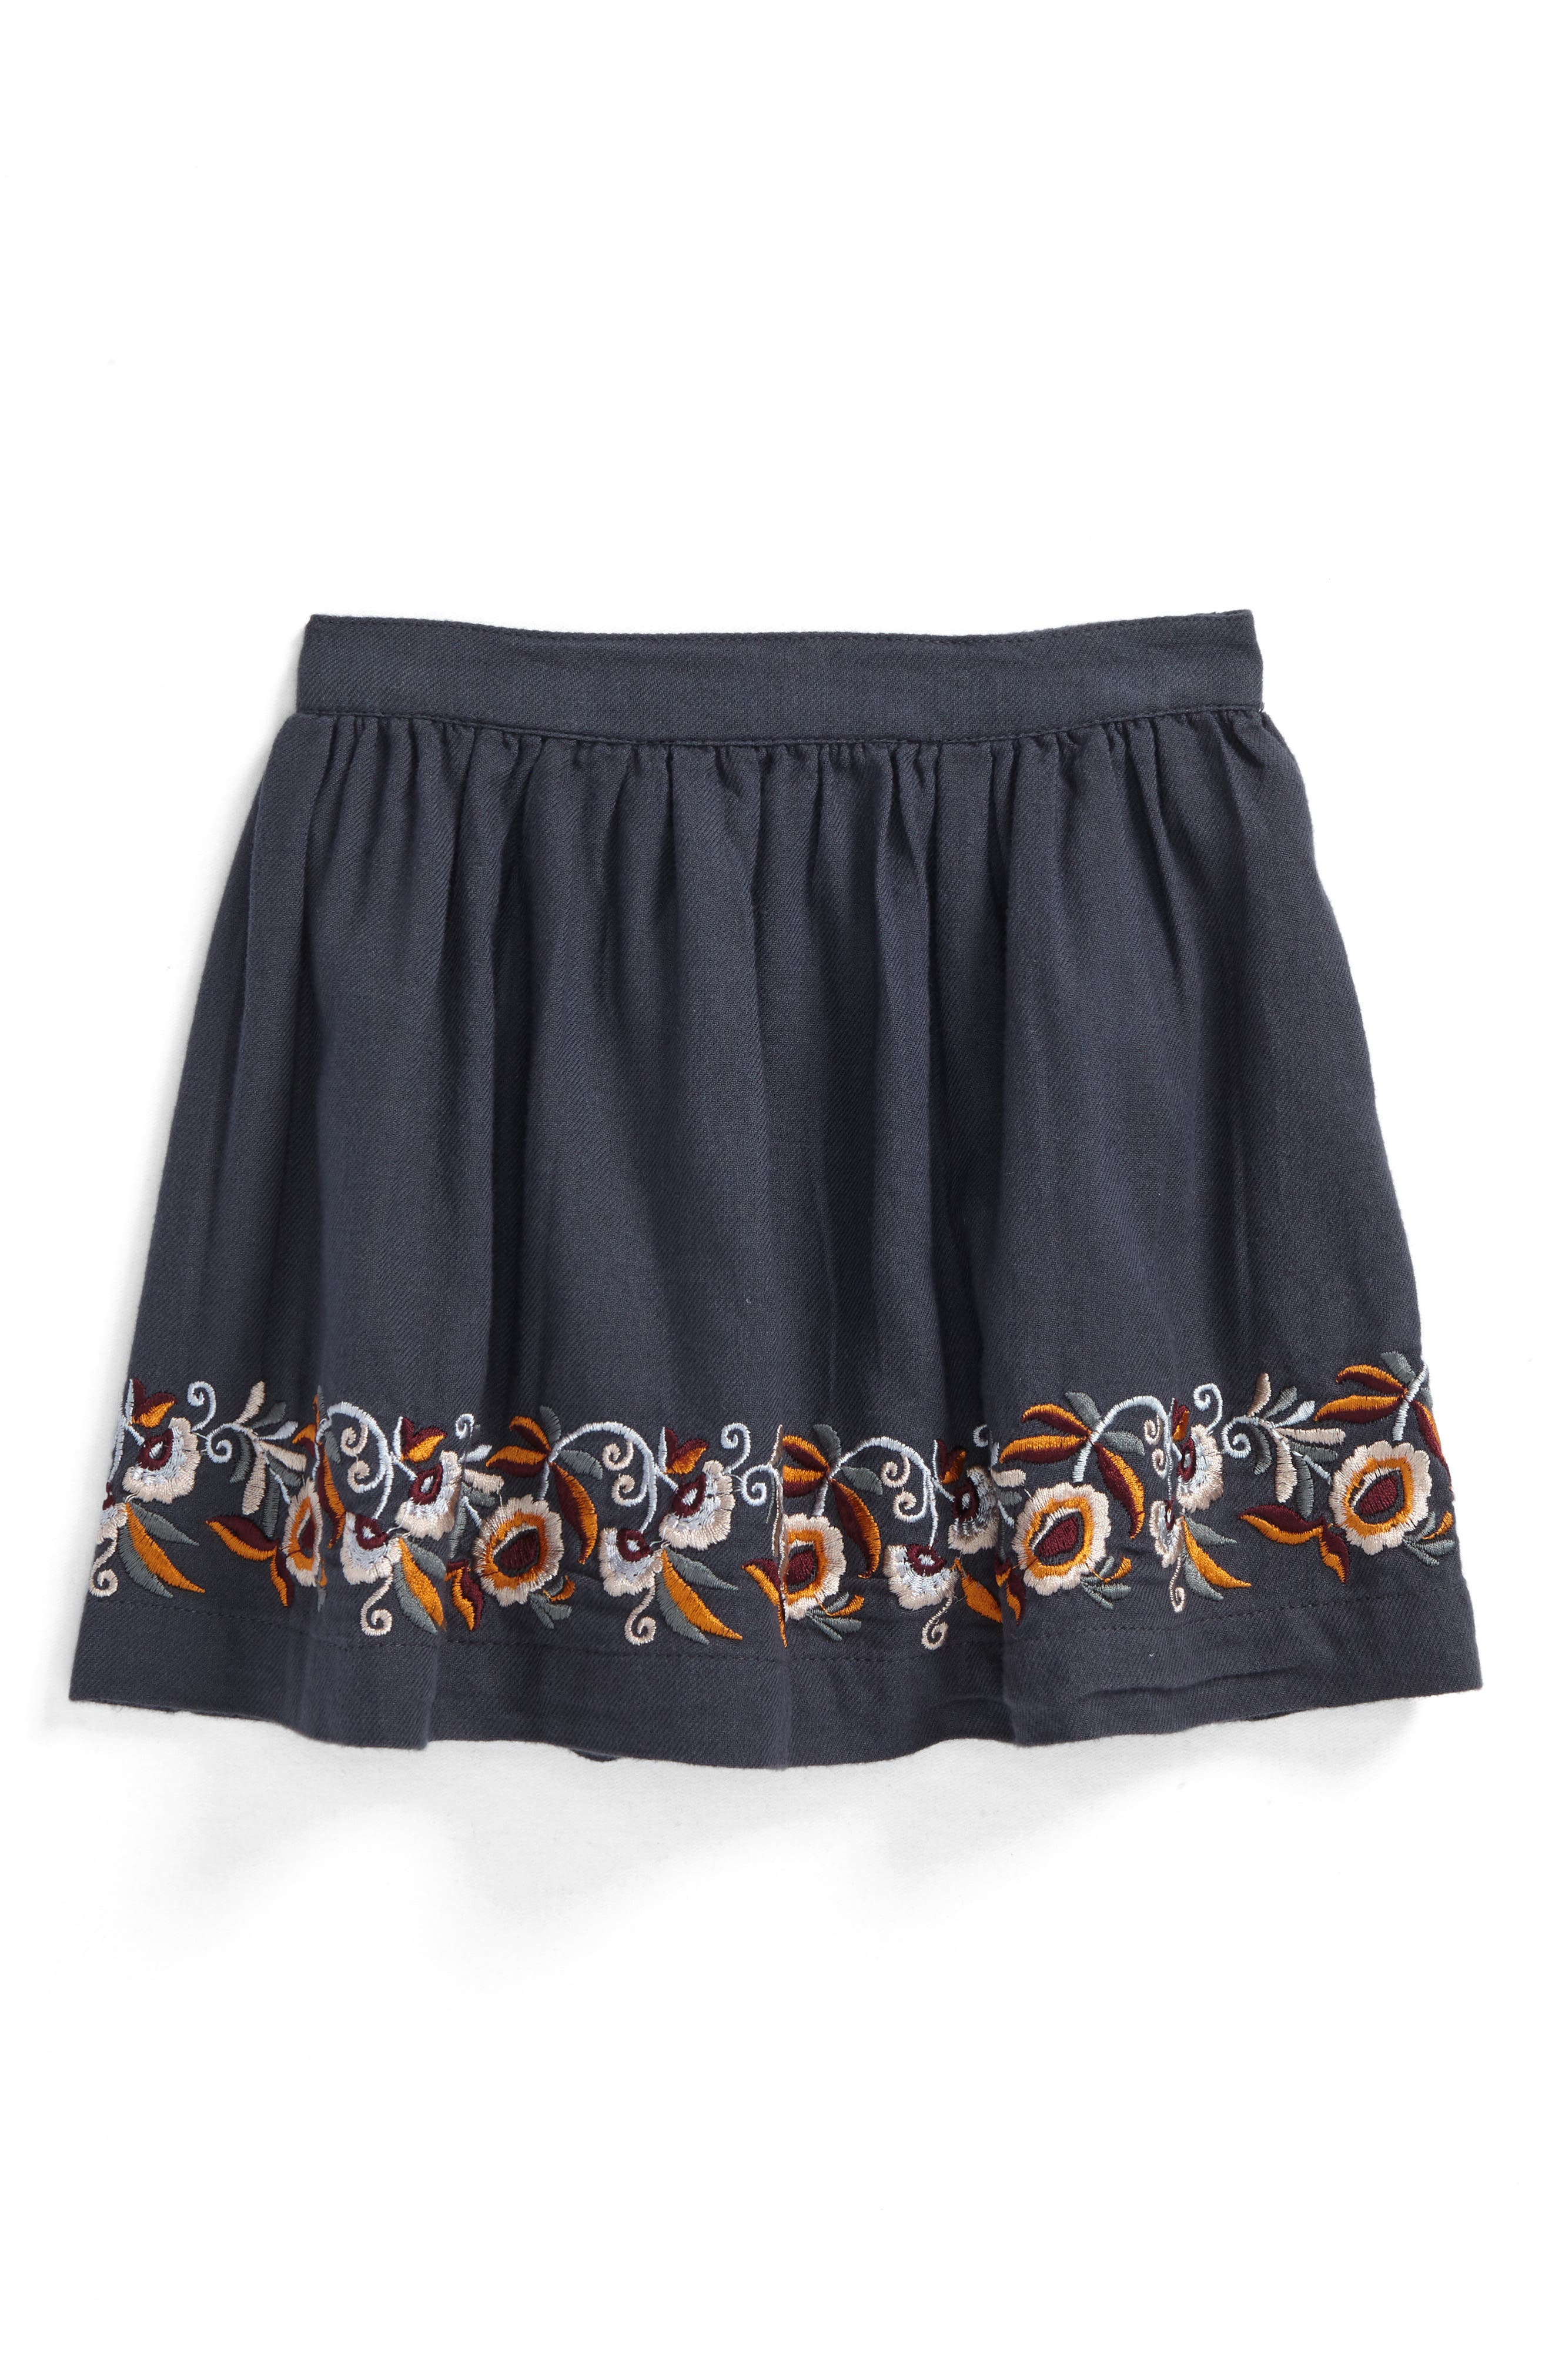 Claire Embroidered Skirt,                             Main thumbnail 1, color,                             021